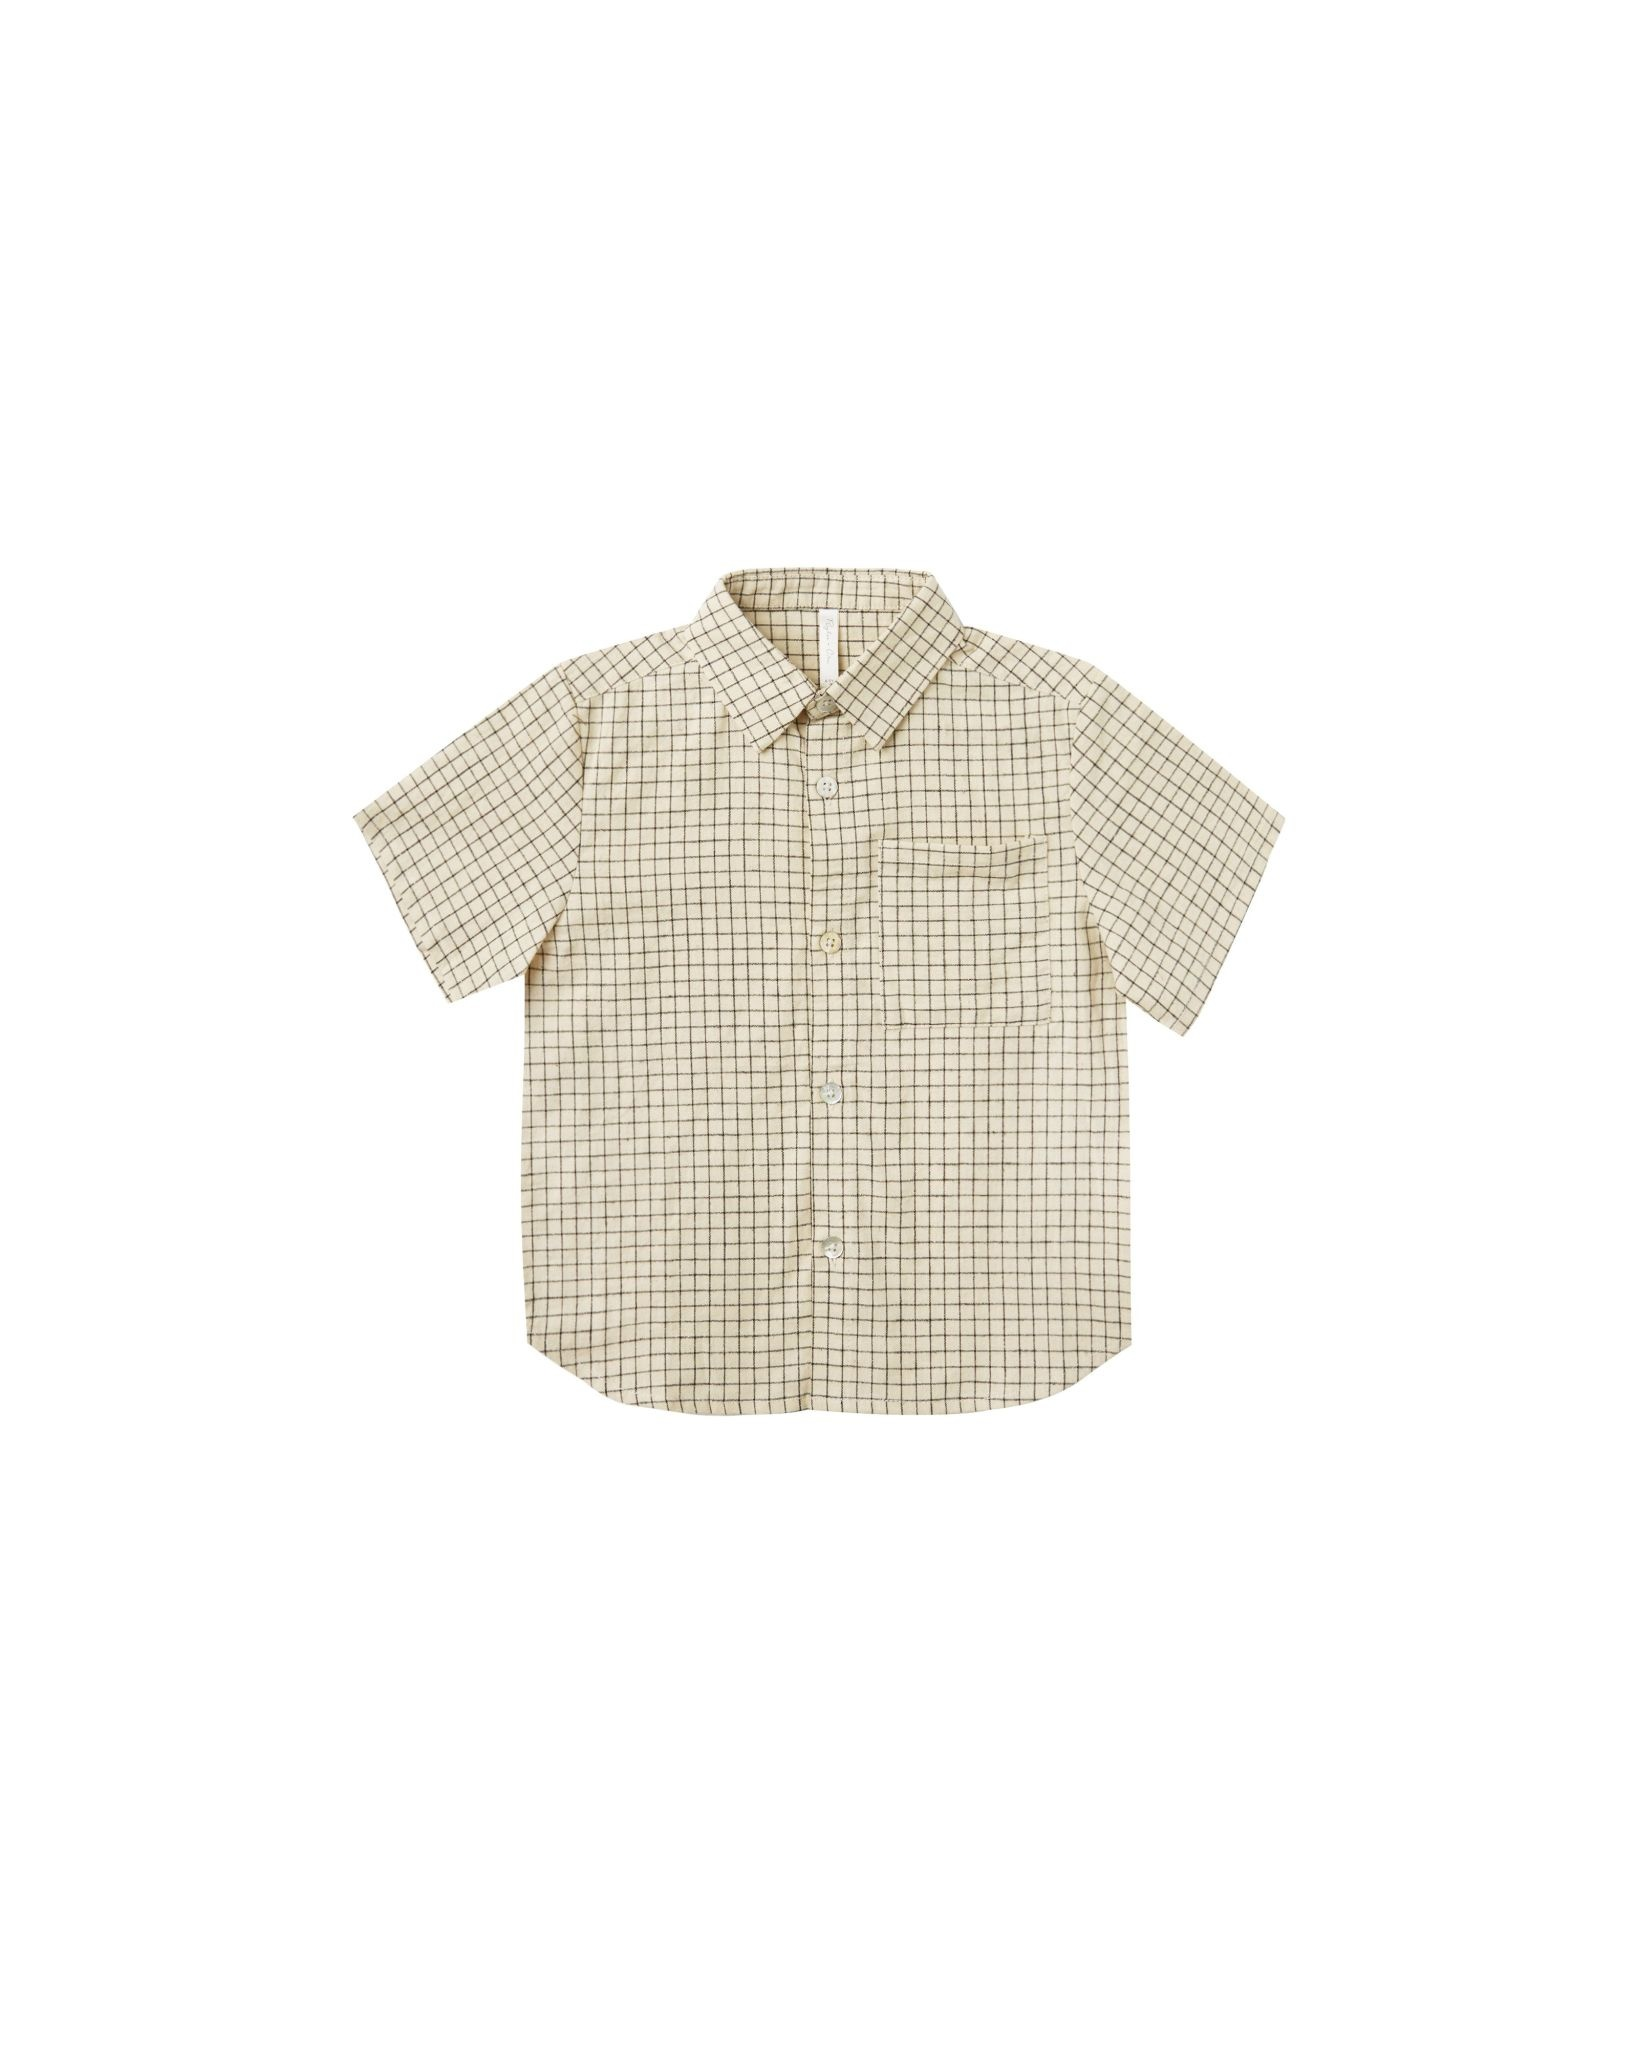 RYLEE AND CRU Grid Collared Shirt